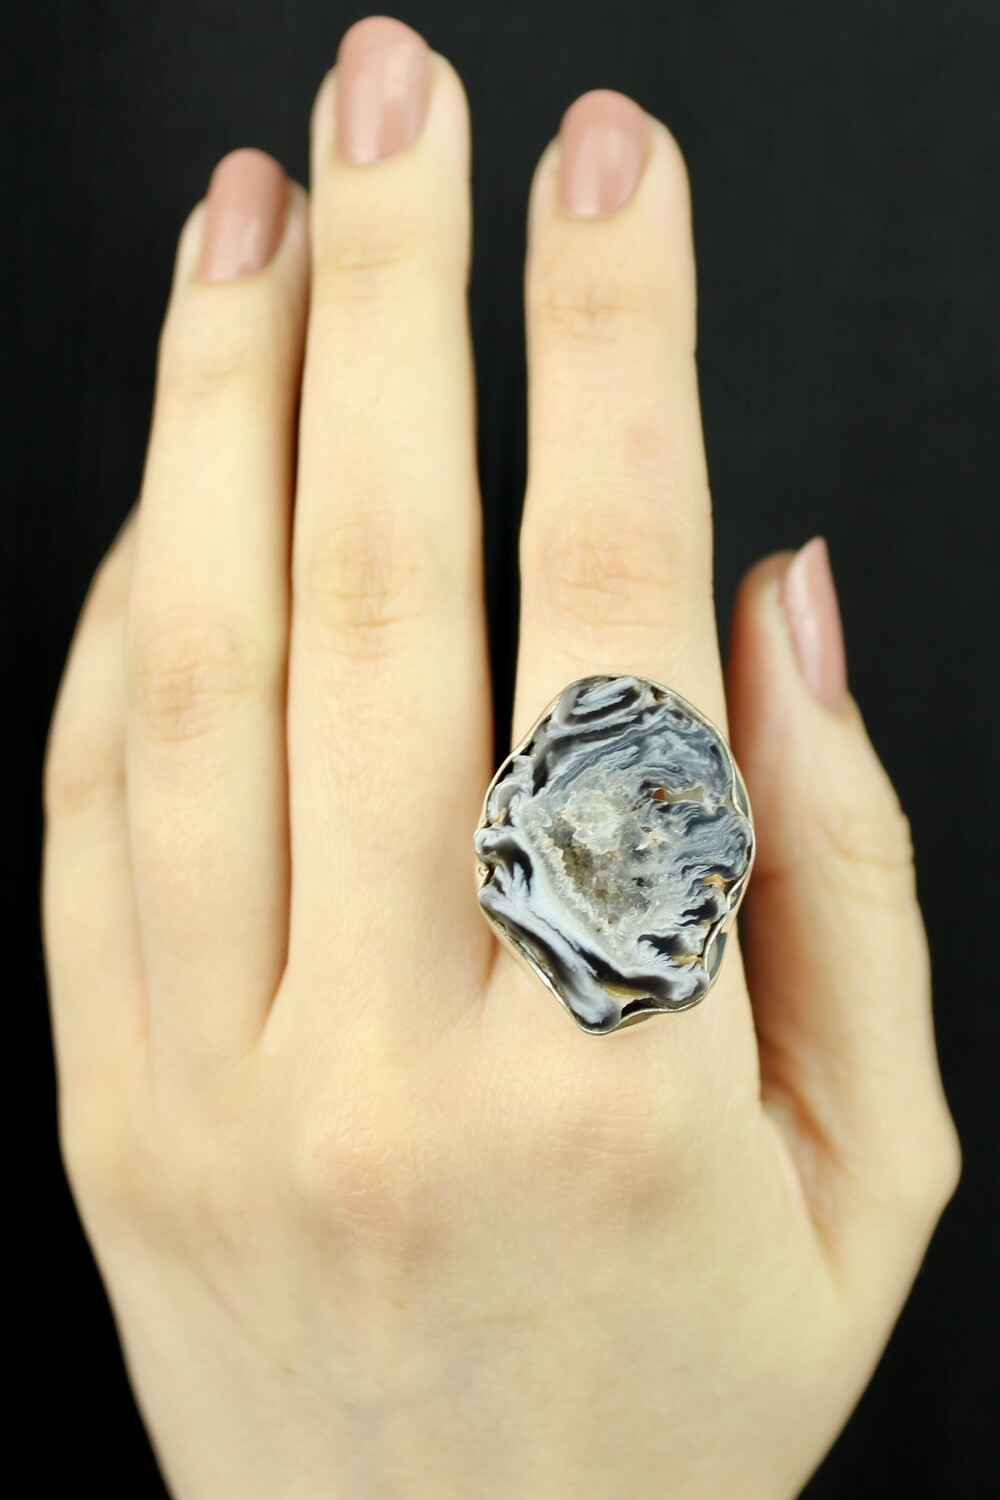 SIZE 10 - Sterling Silver Oco Geode Ring - RIG10102